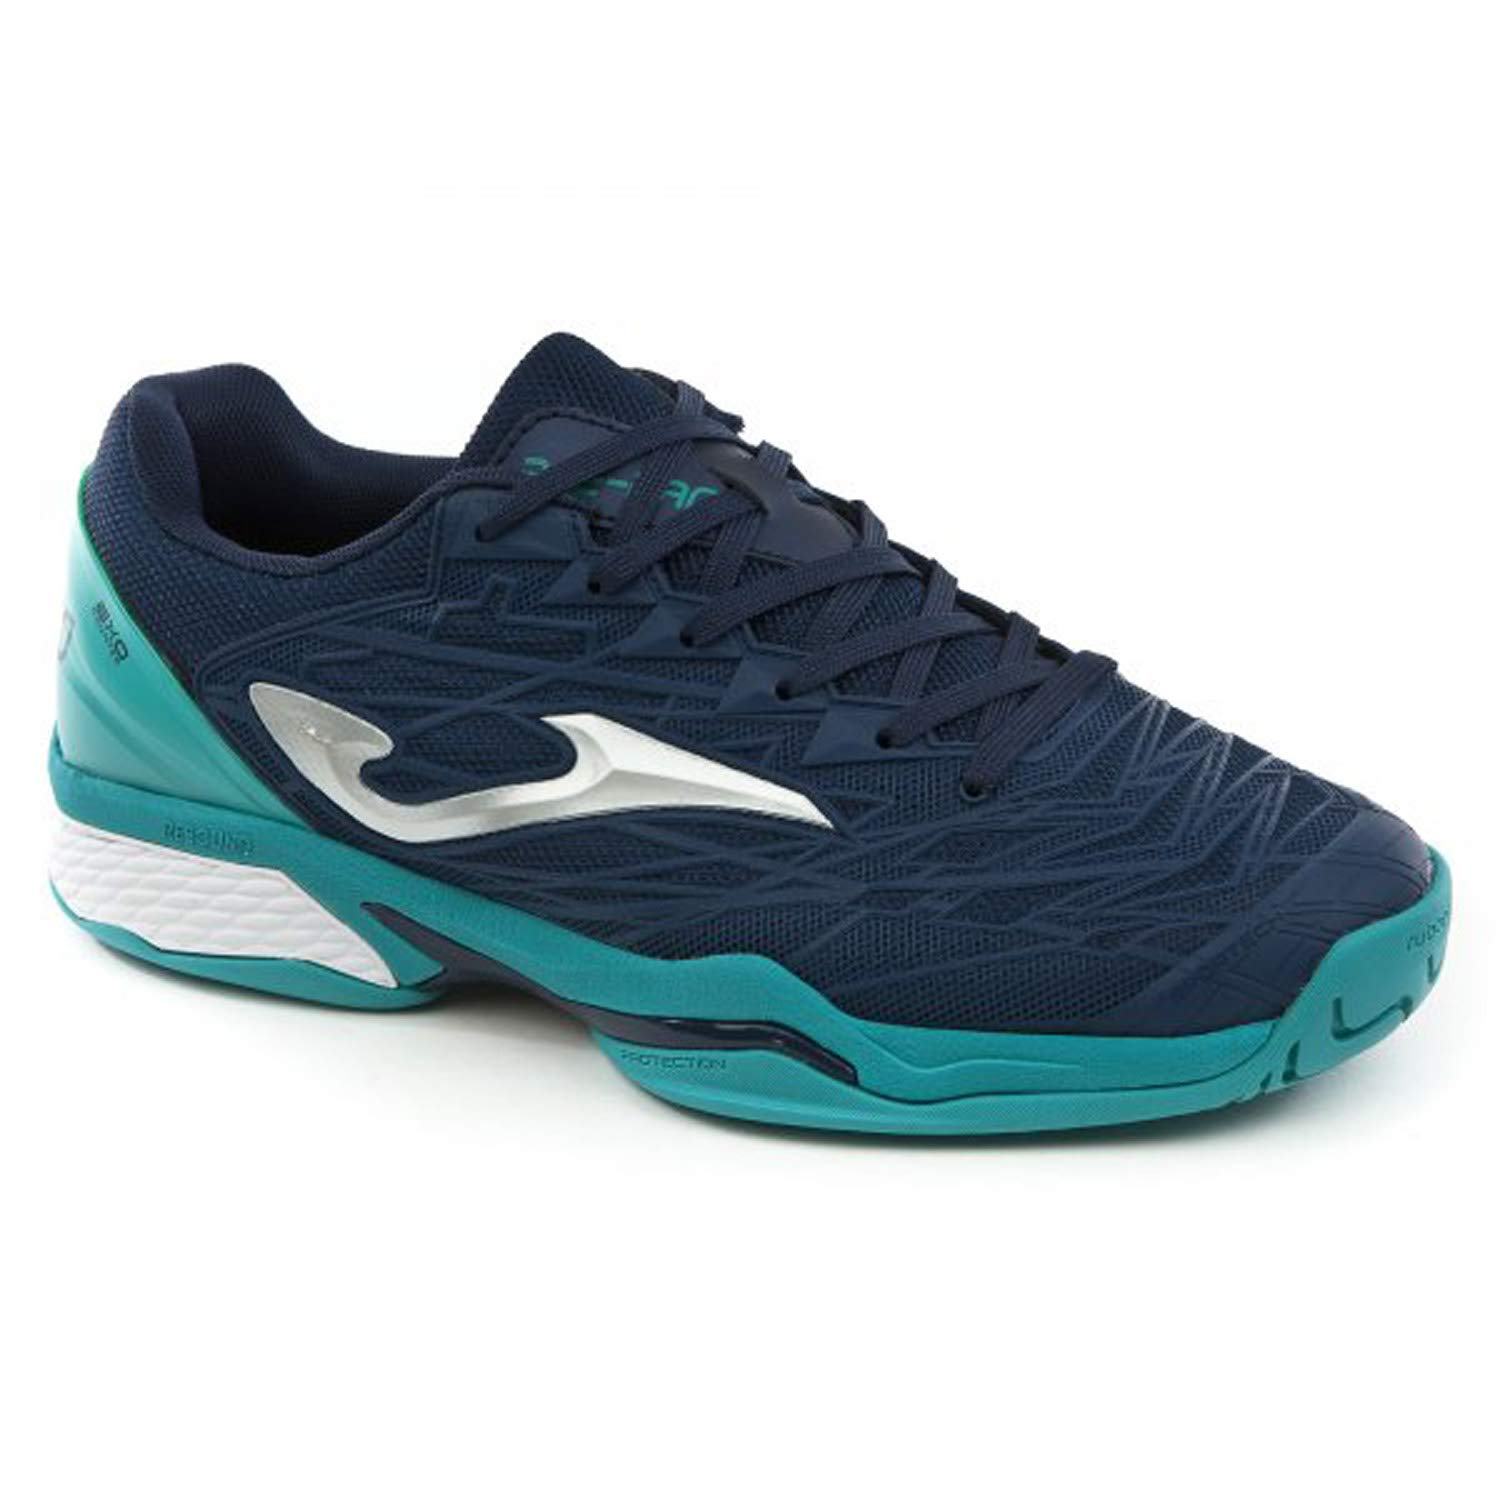 Joma Chaussures Ace Pro